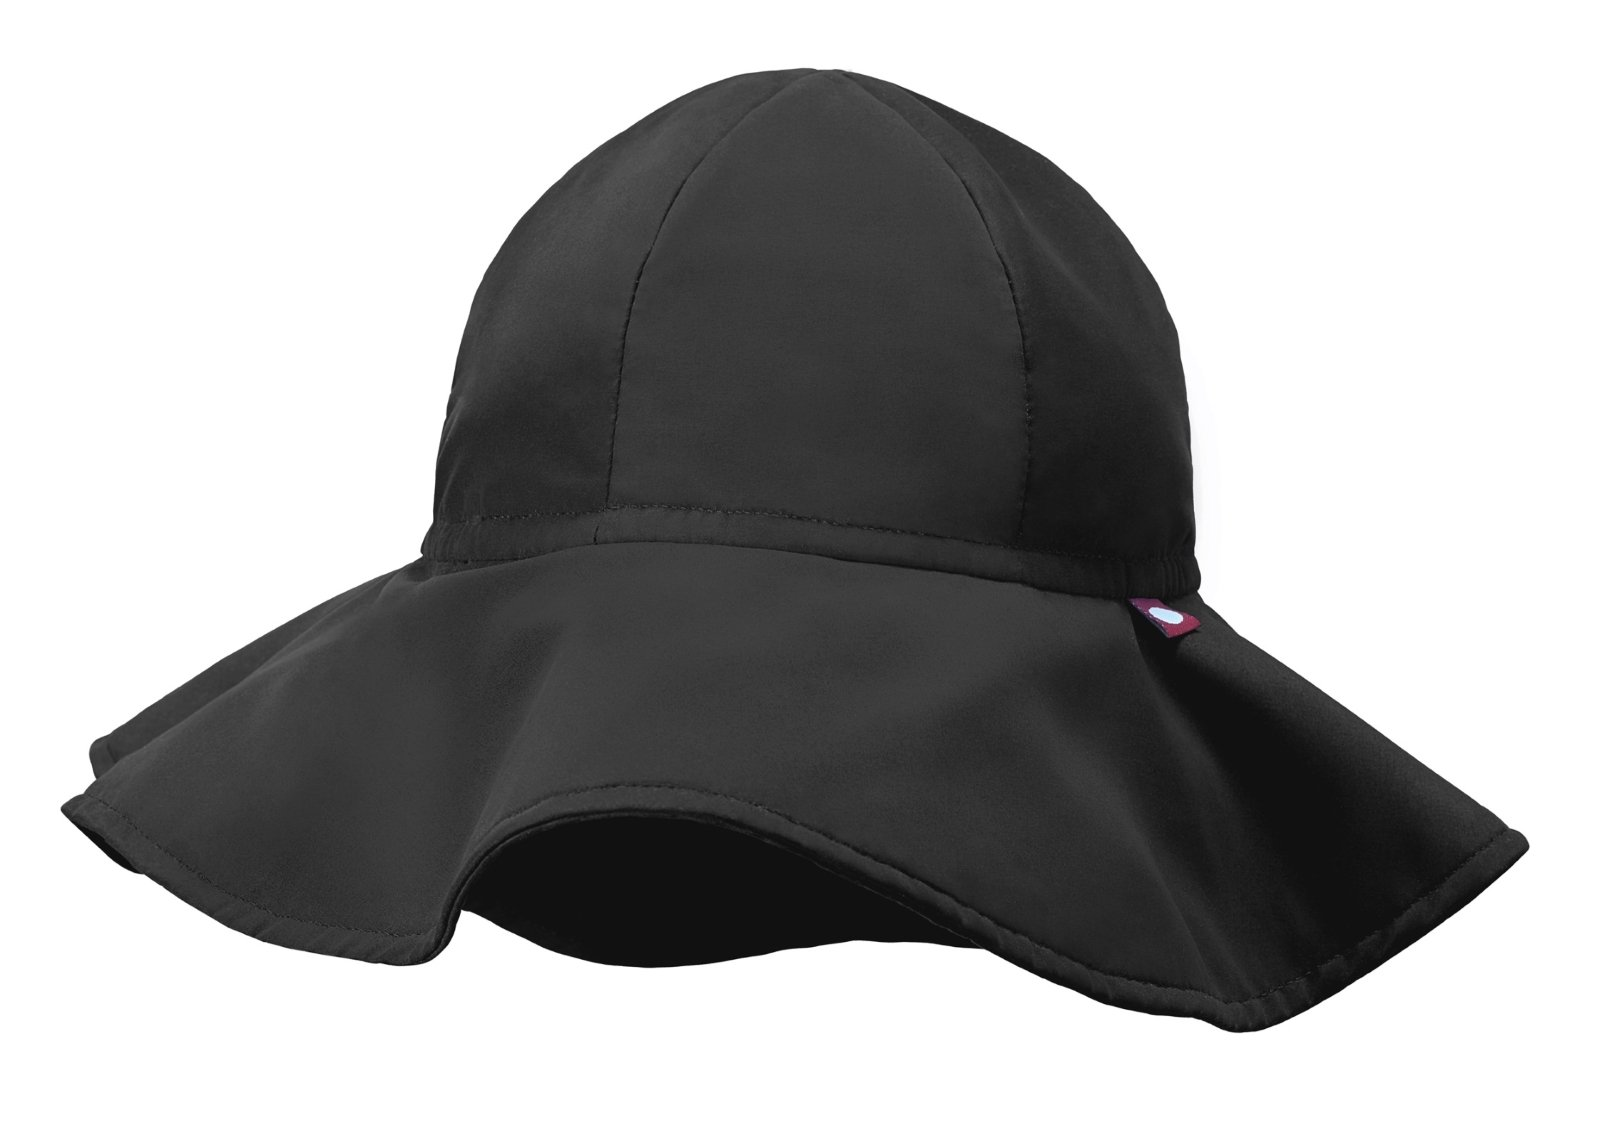 City Threads Swimmig Hat for Boys and Girls, Swim Hat Bucket Floppy Hat with SPF Sun Protection SPF for Beach Summer Pool, Black, S